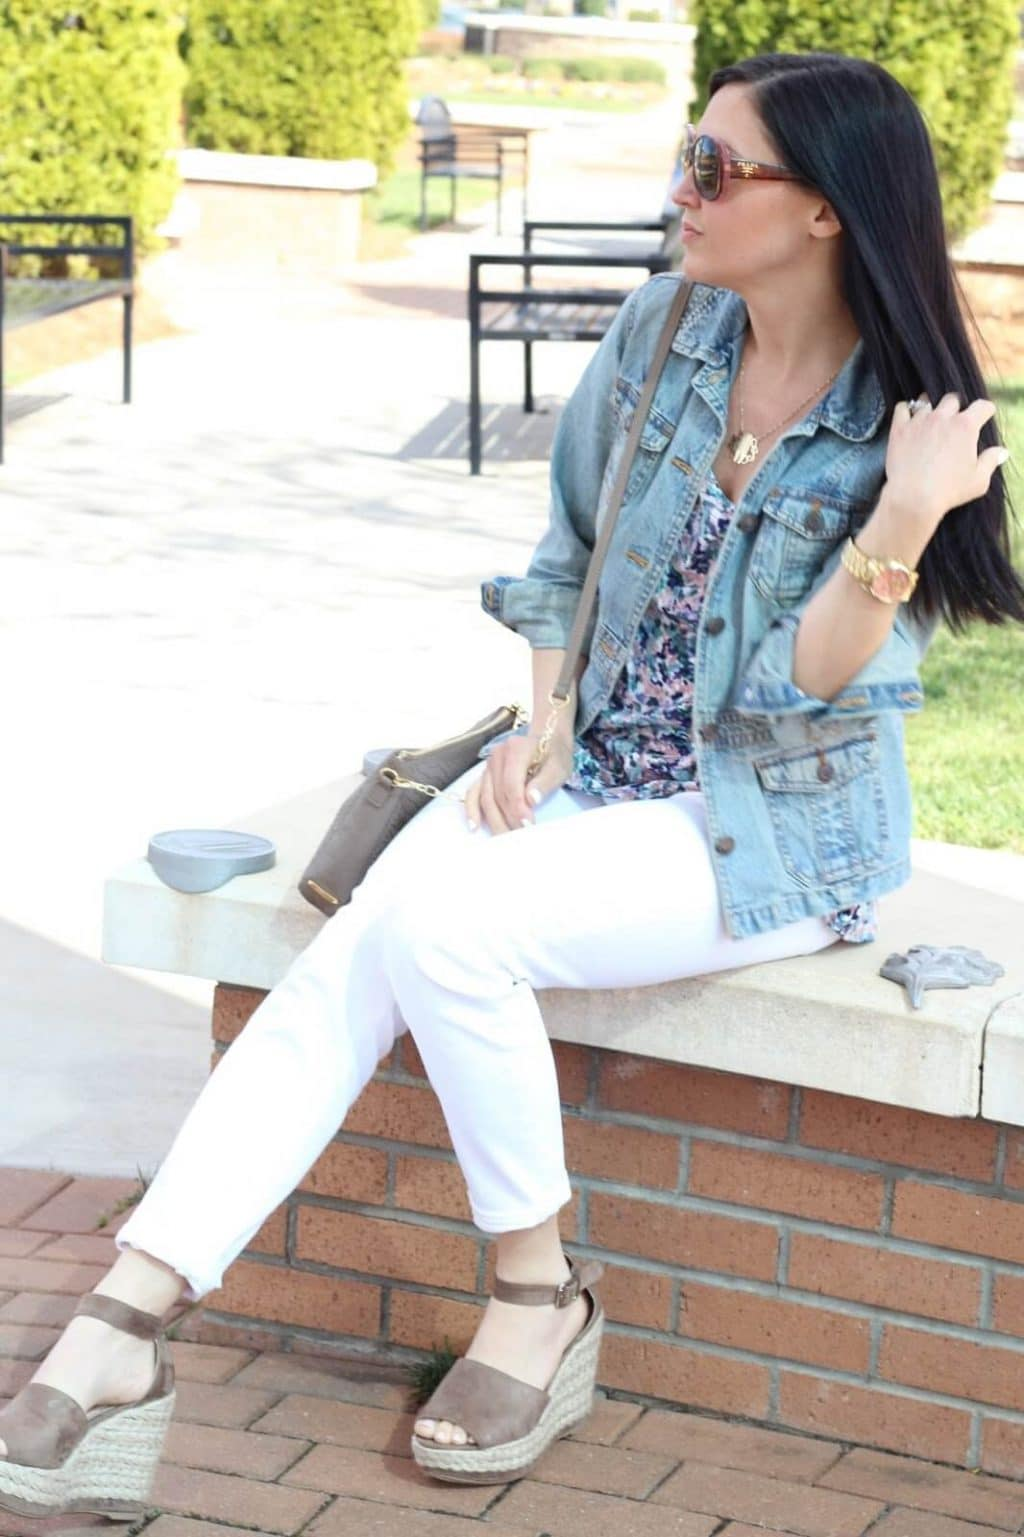 Floral Cold Shoulder, White Skinnies and Denim for Spring, Prada Sunglasses, Espadrilles